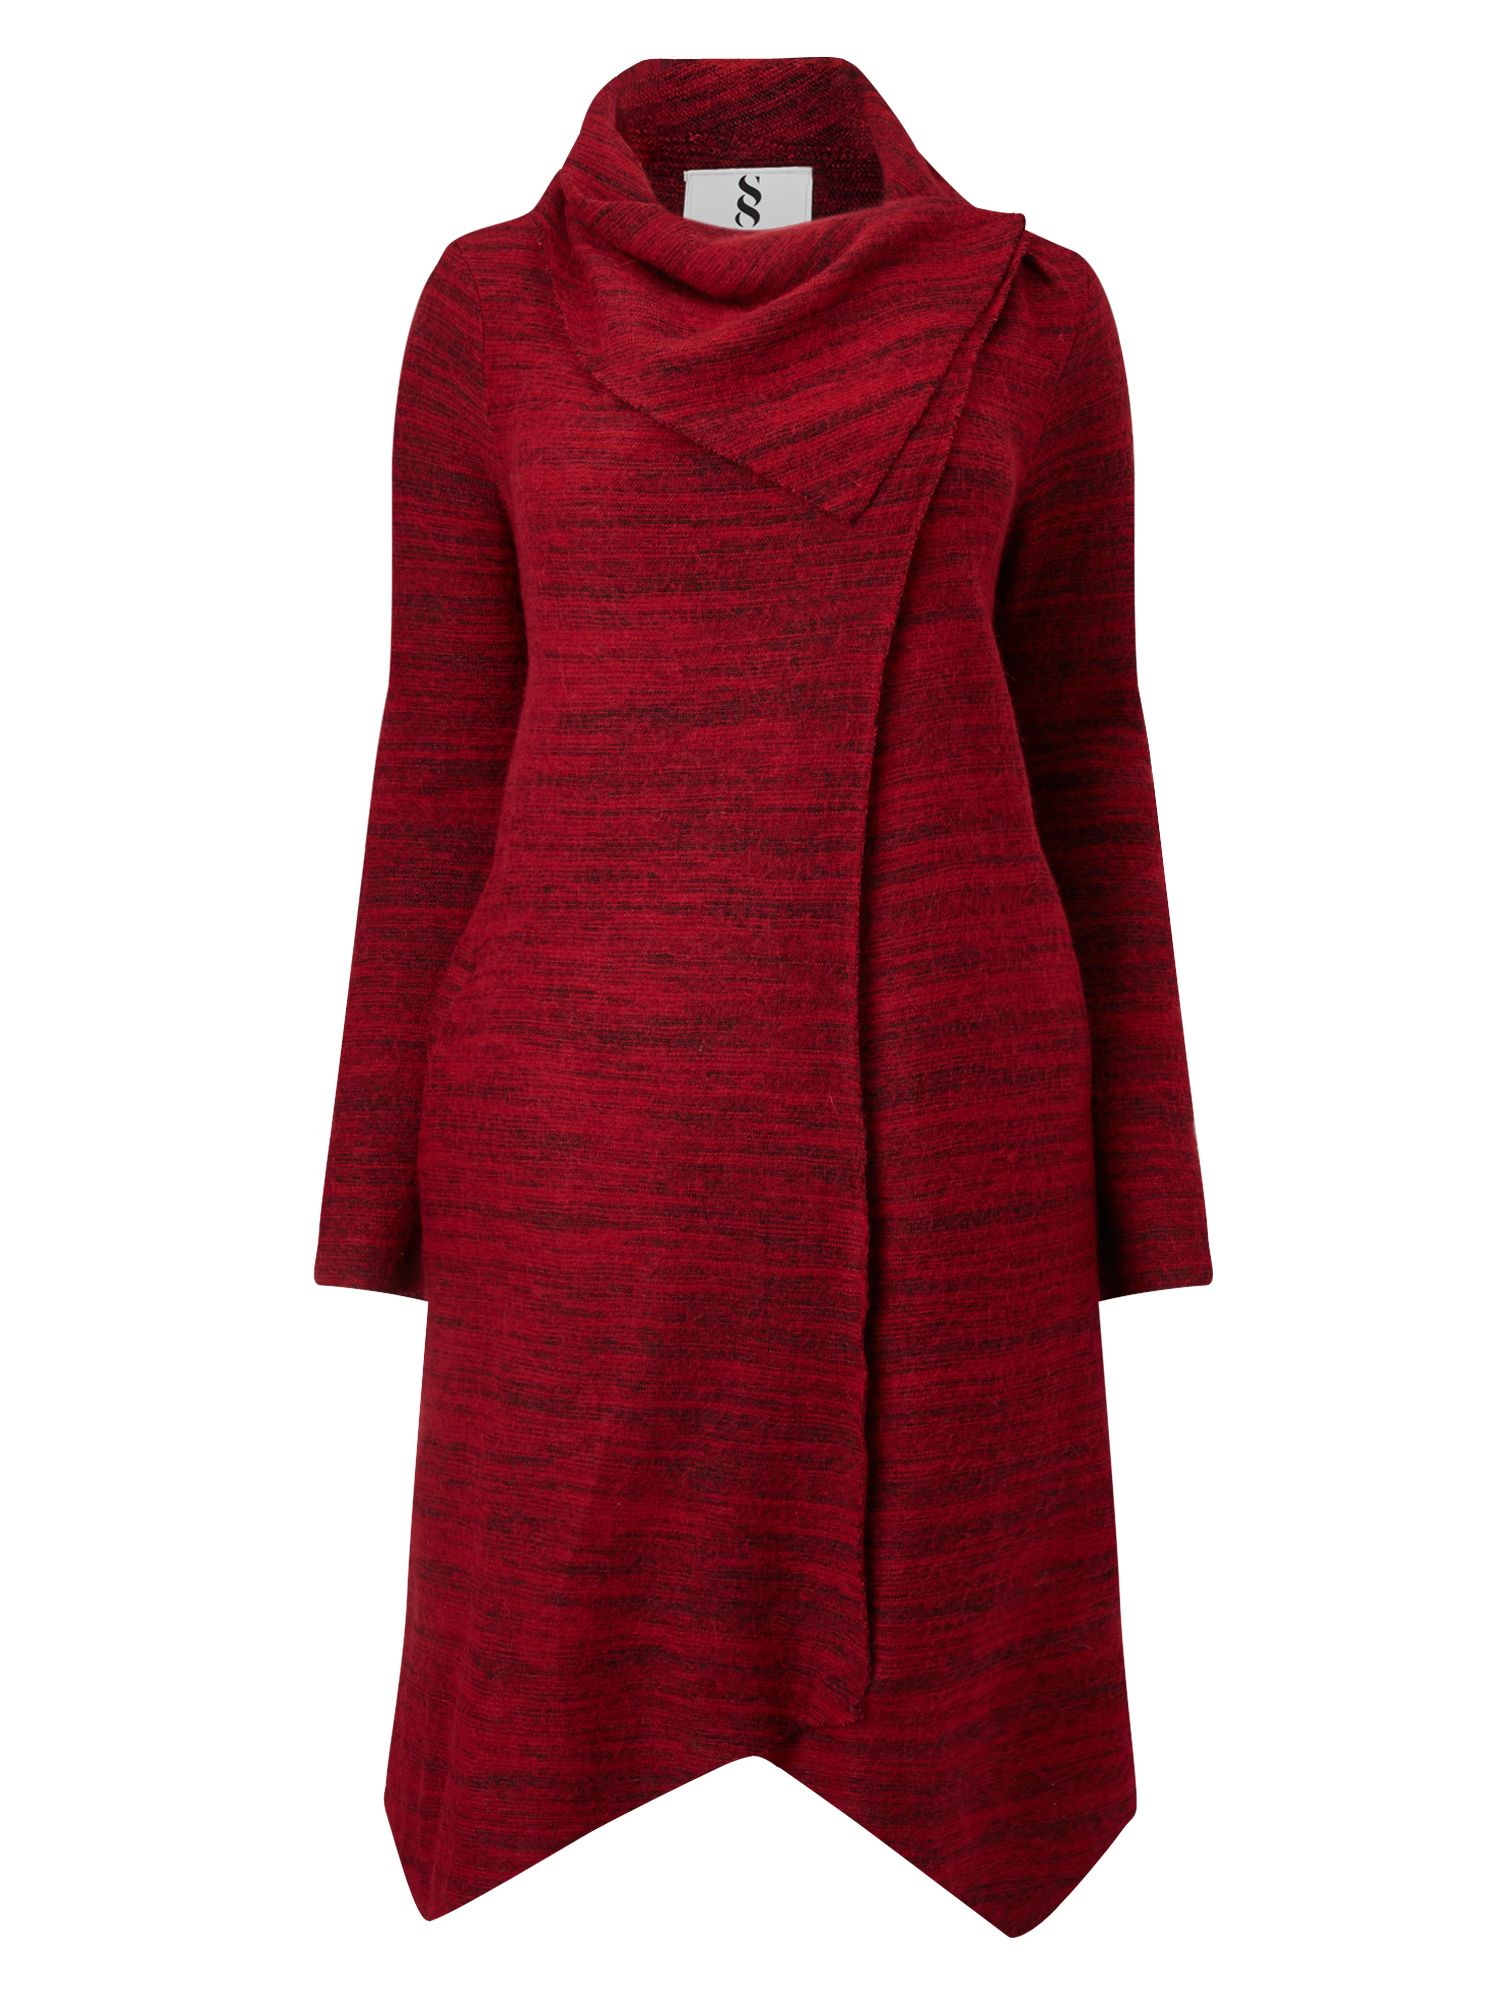 Studio 8 Wendy Coat, Red